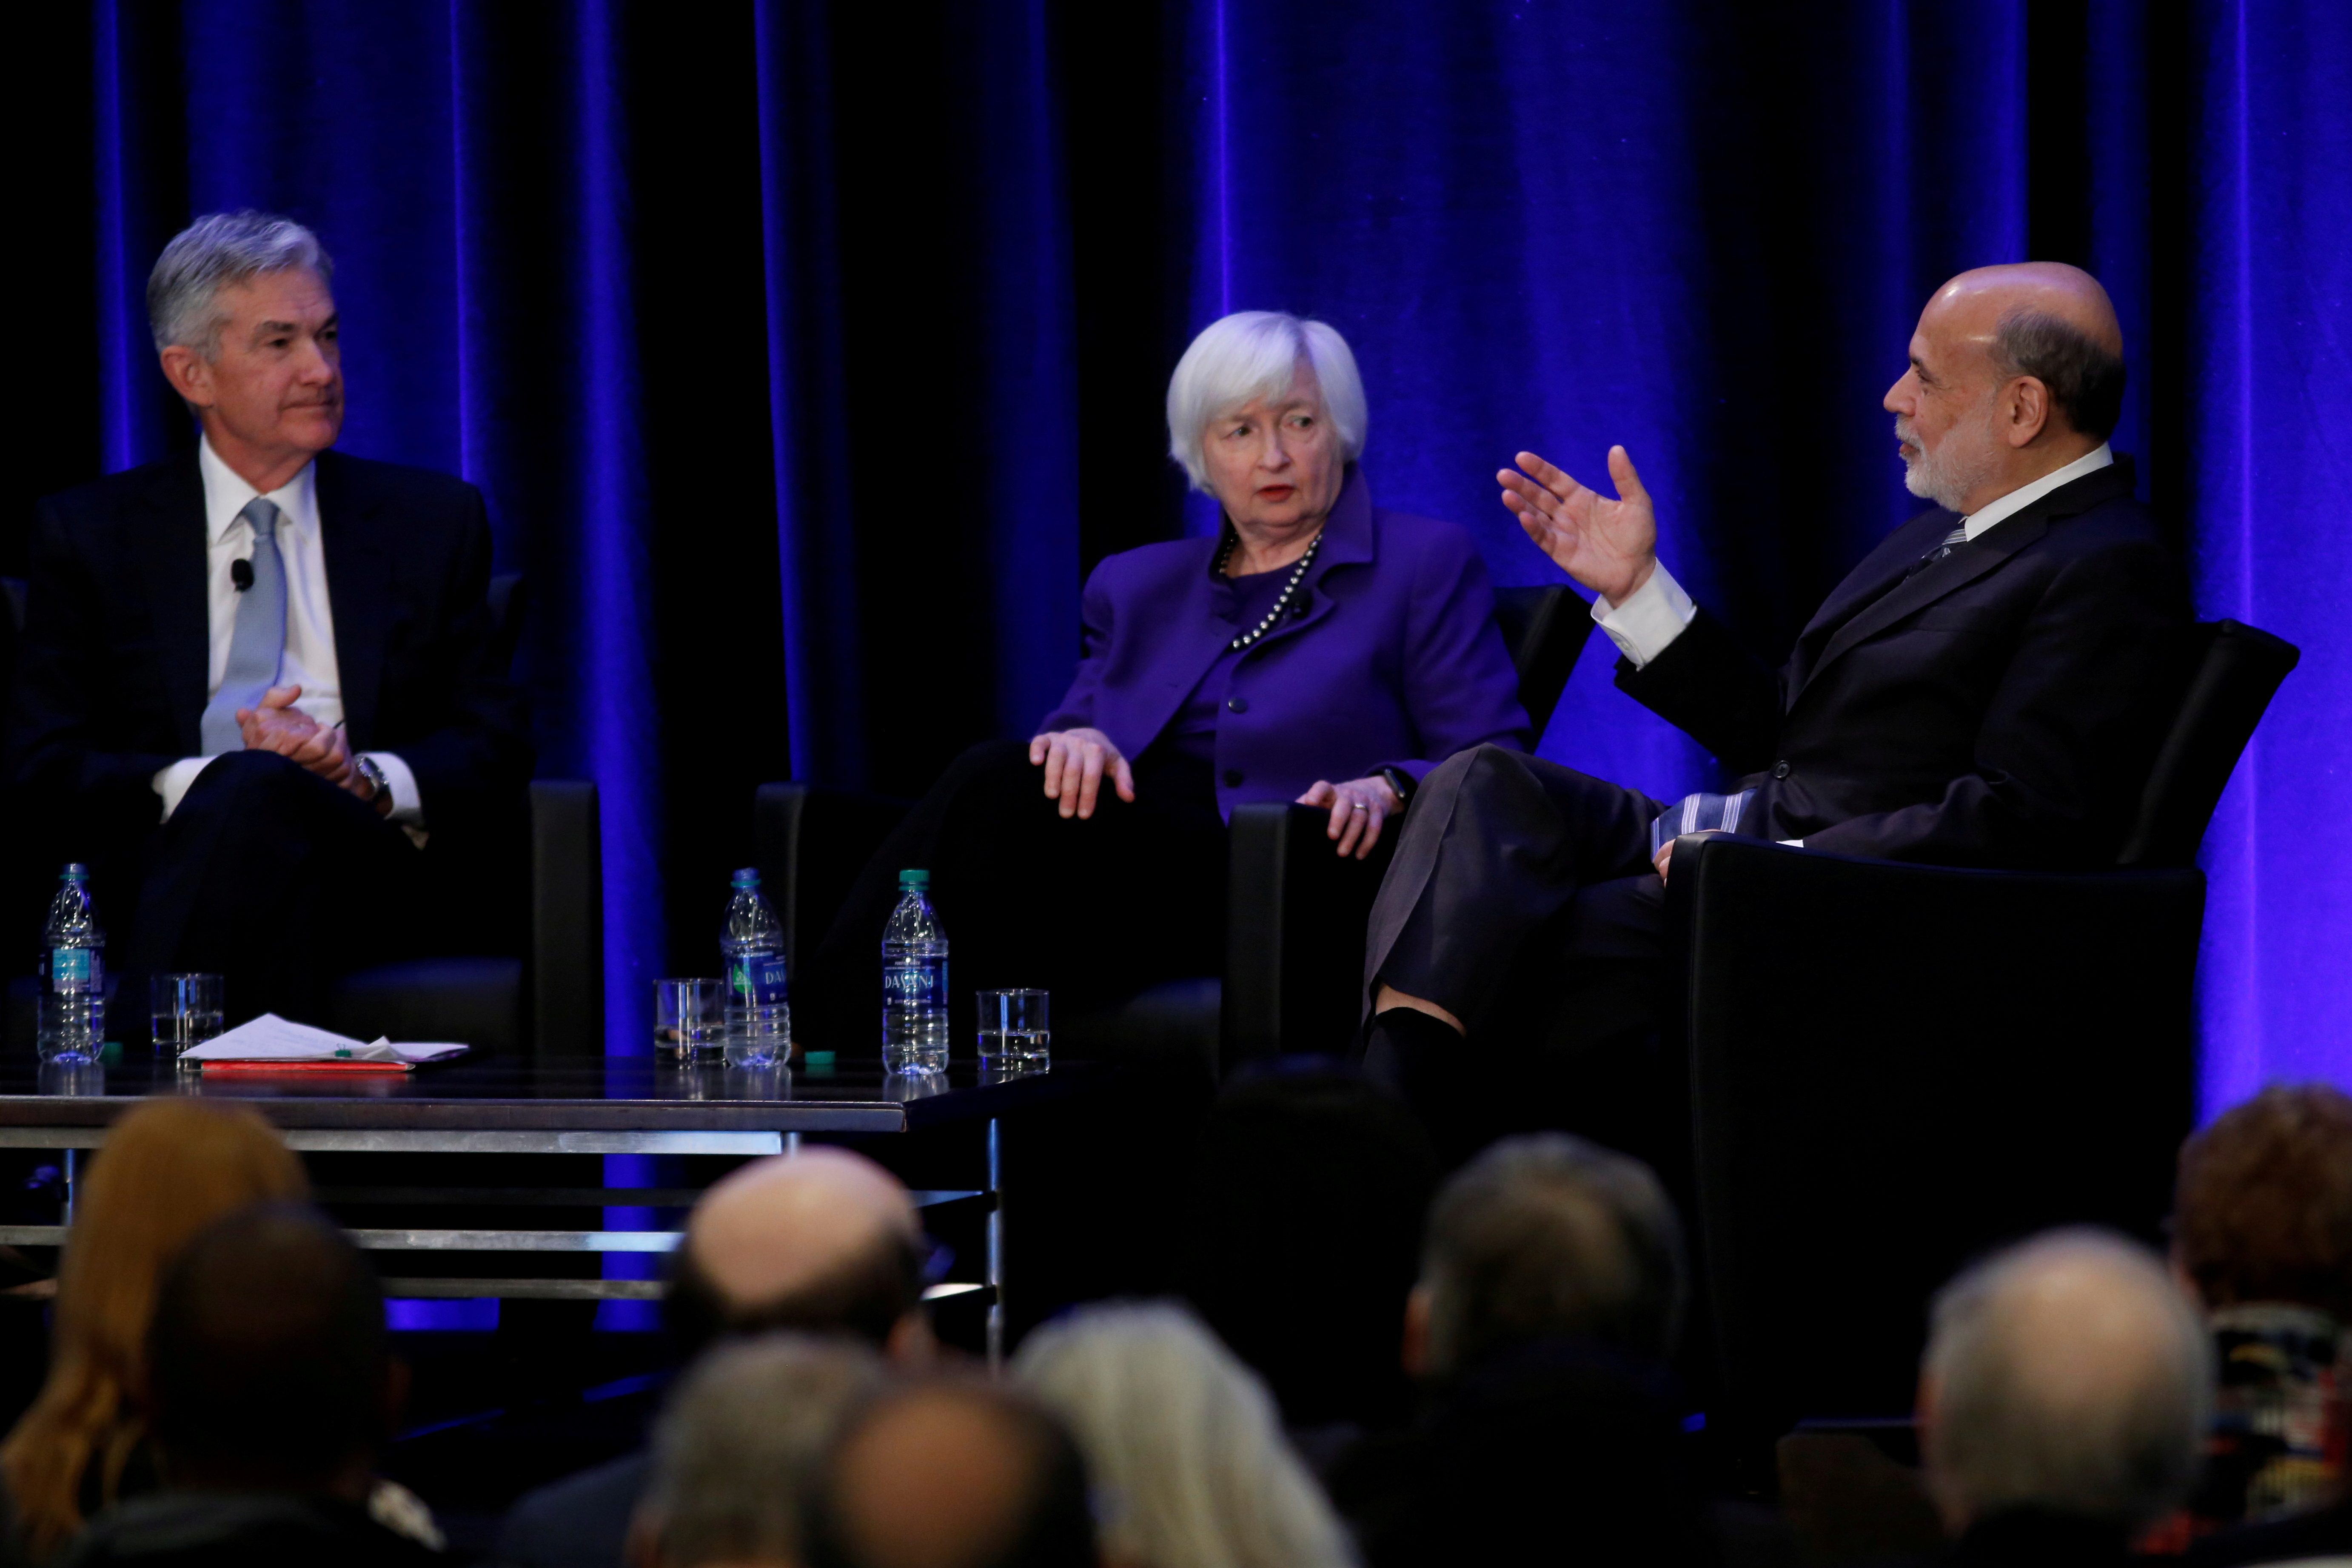 U.S. Federal Reserve Chair Jerome Powell and former Fed Chair Janet Yellen look on as former Fed Chairman Ben Bernanke speaks at the American Economic Association/Allied Social Science Association (ASSA) 2019 meeting in Atlanta, Georgia, U.S., January 4, 2019. REUTERS/Christopher Aluka Berry/File Photo